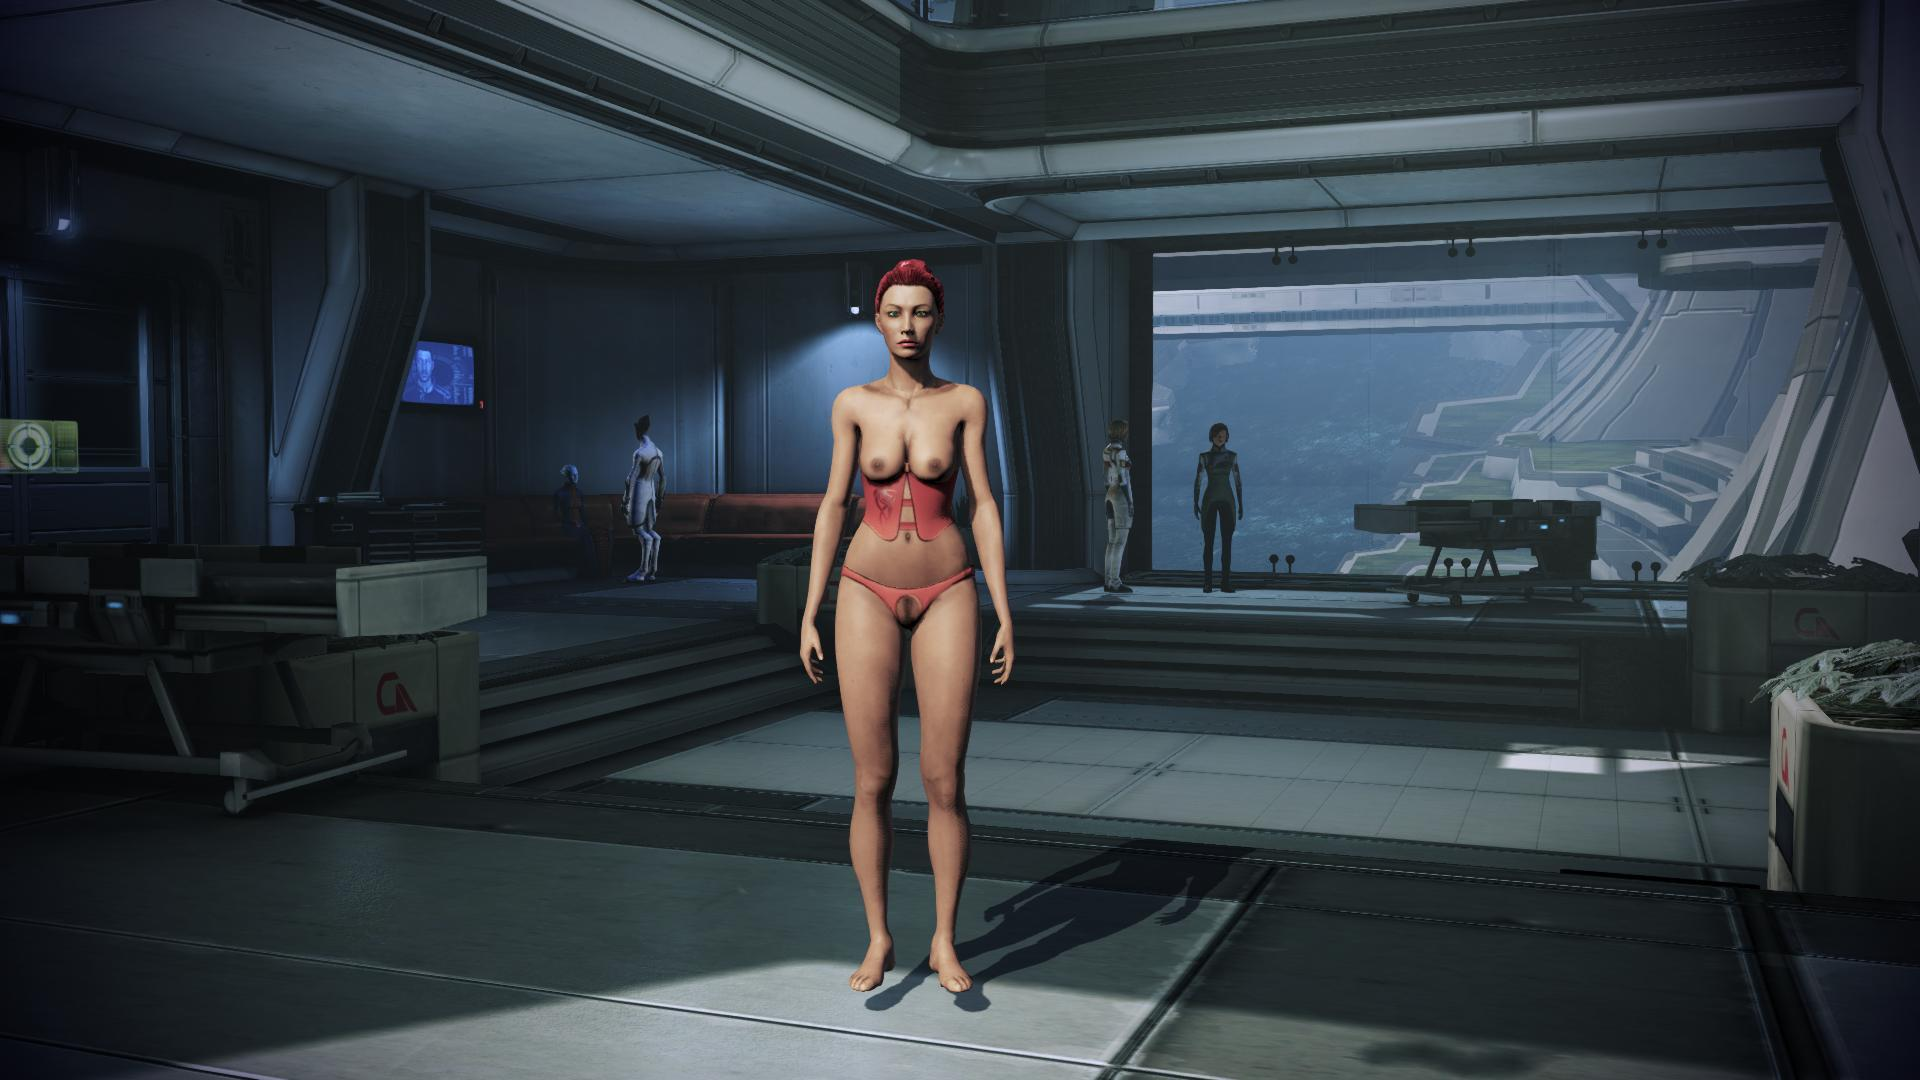 Mass effect nude modes hentai pictures